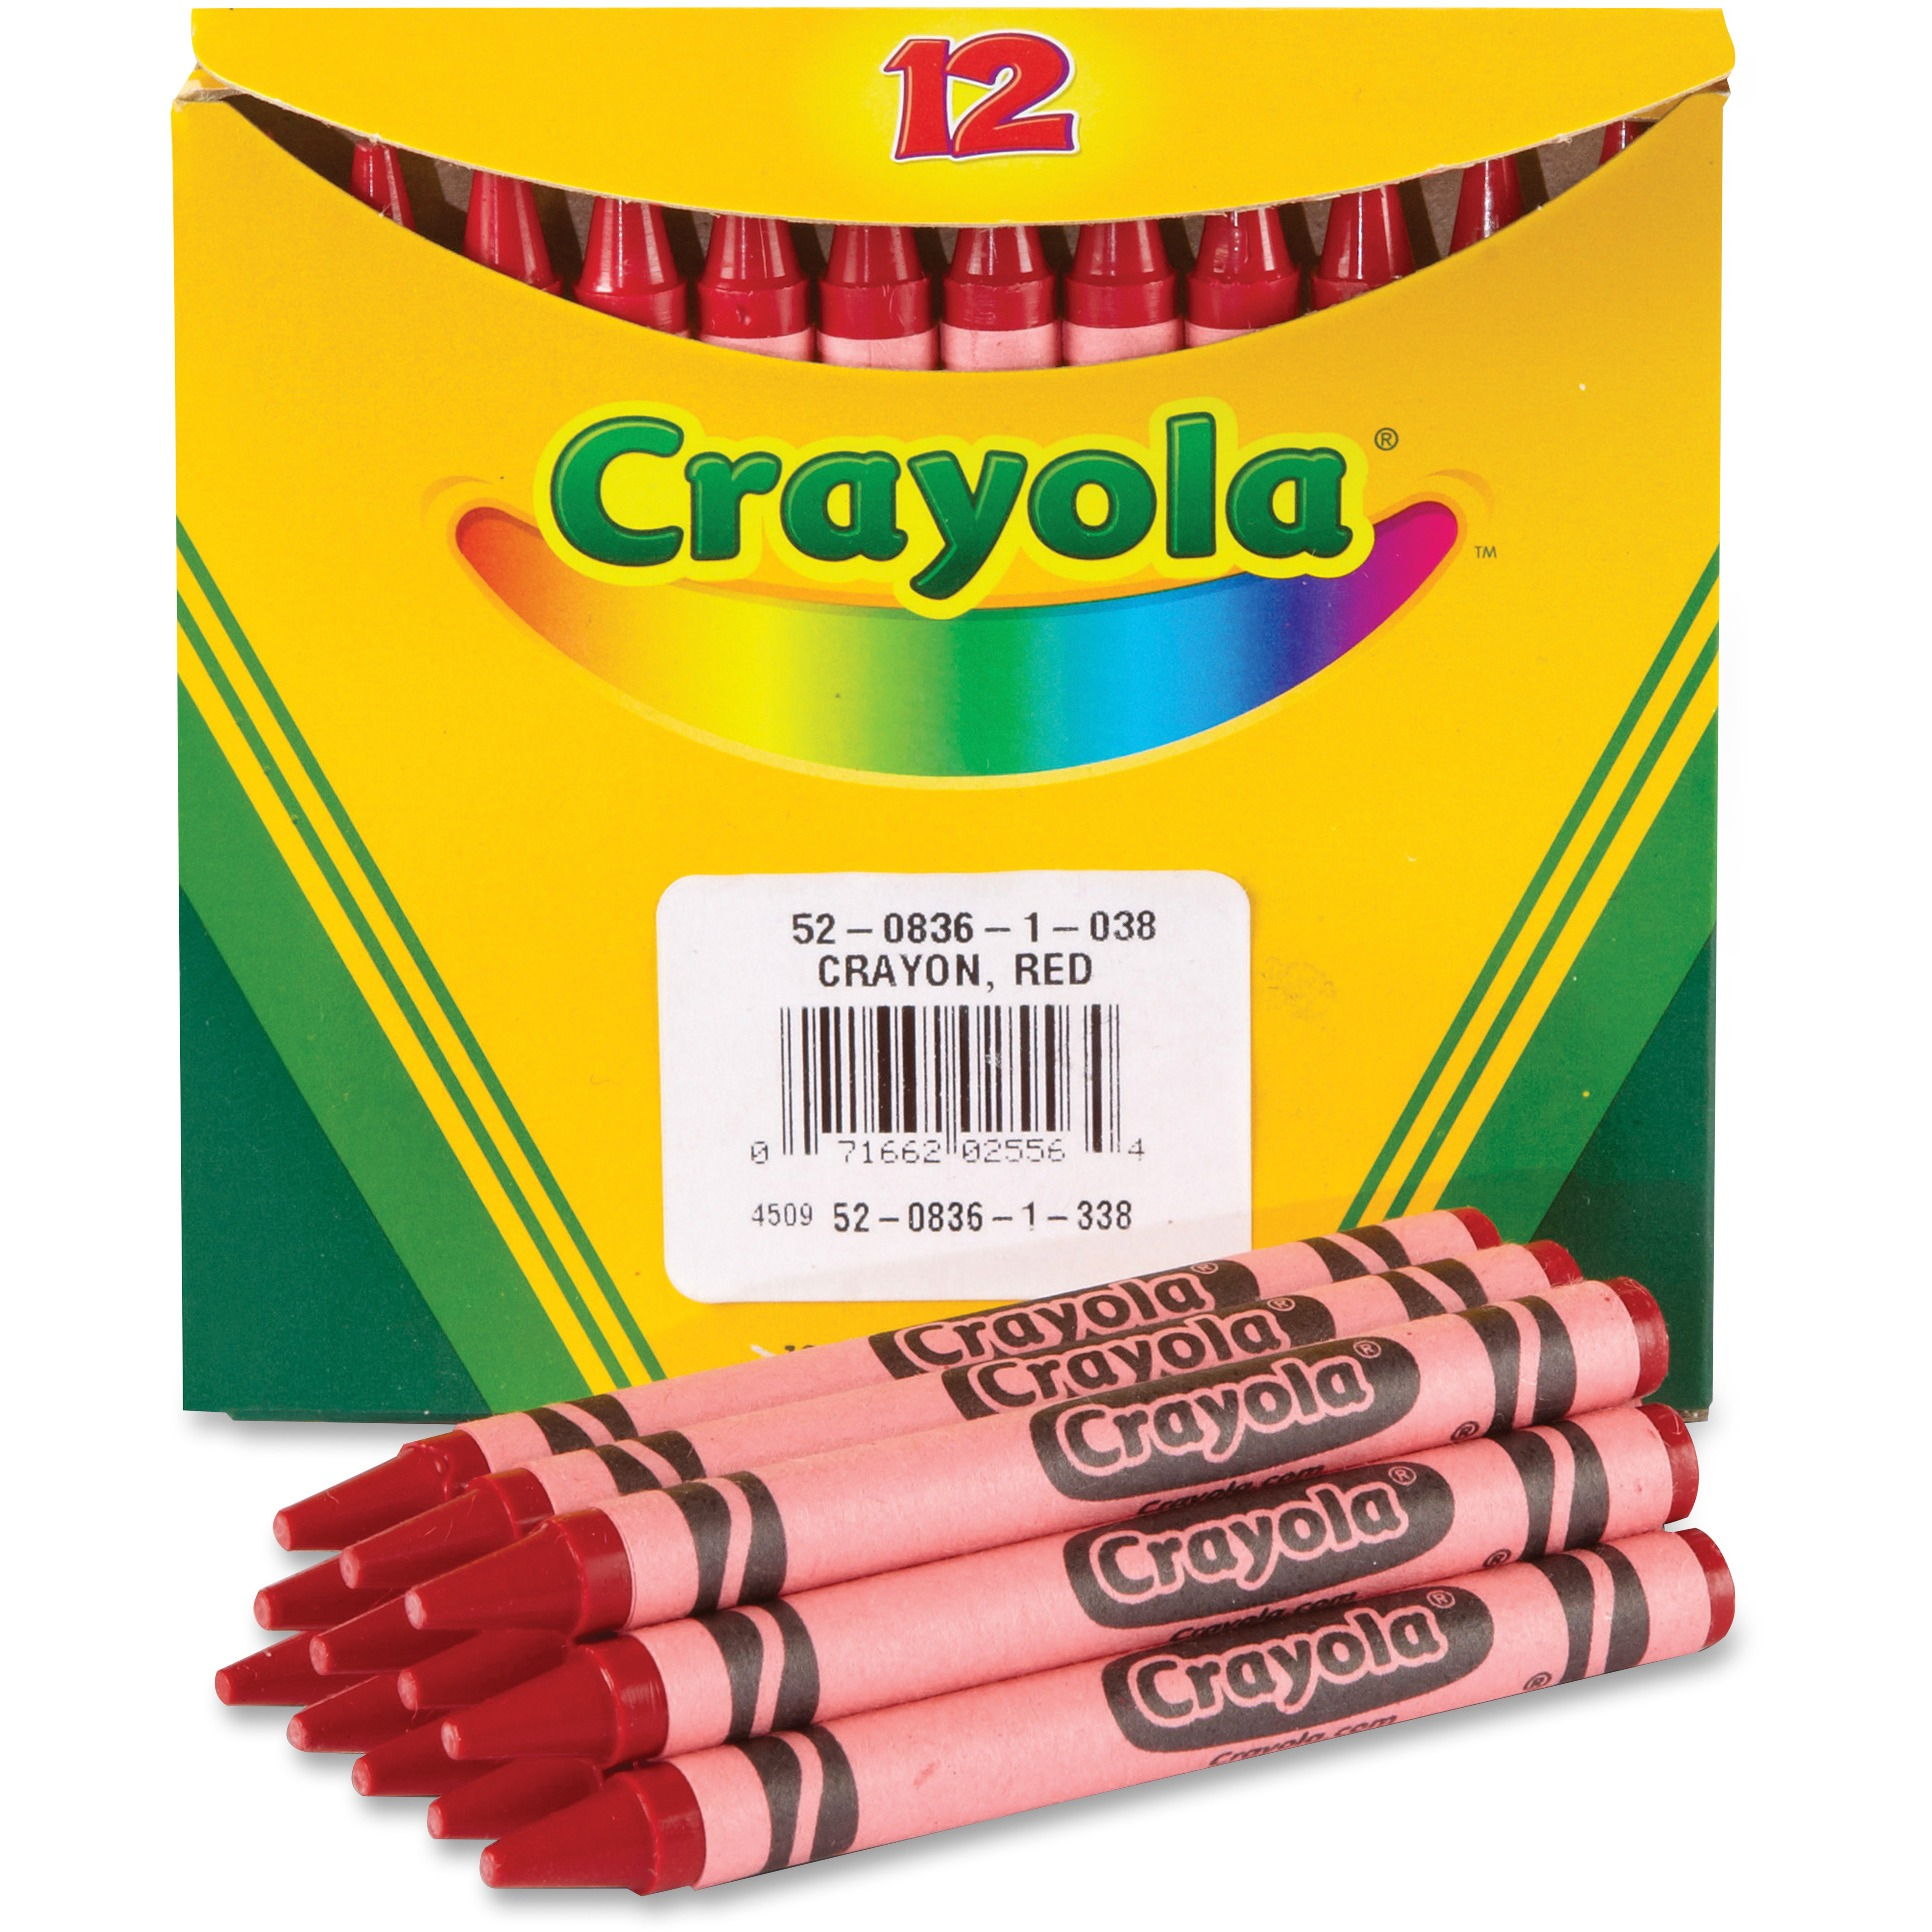 Crayola Bulk Crayons, Pack of 12, Red